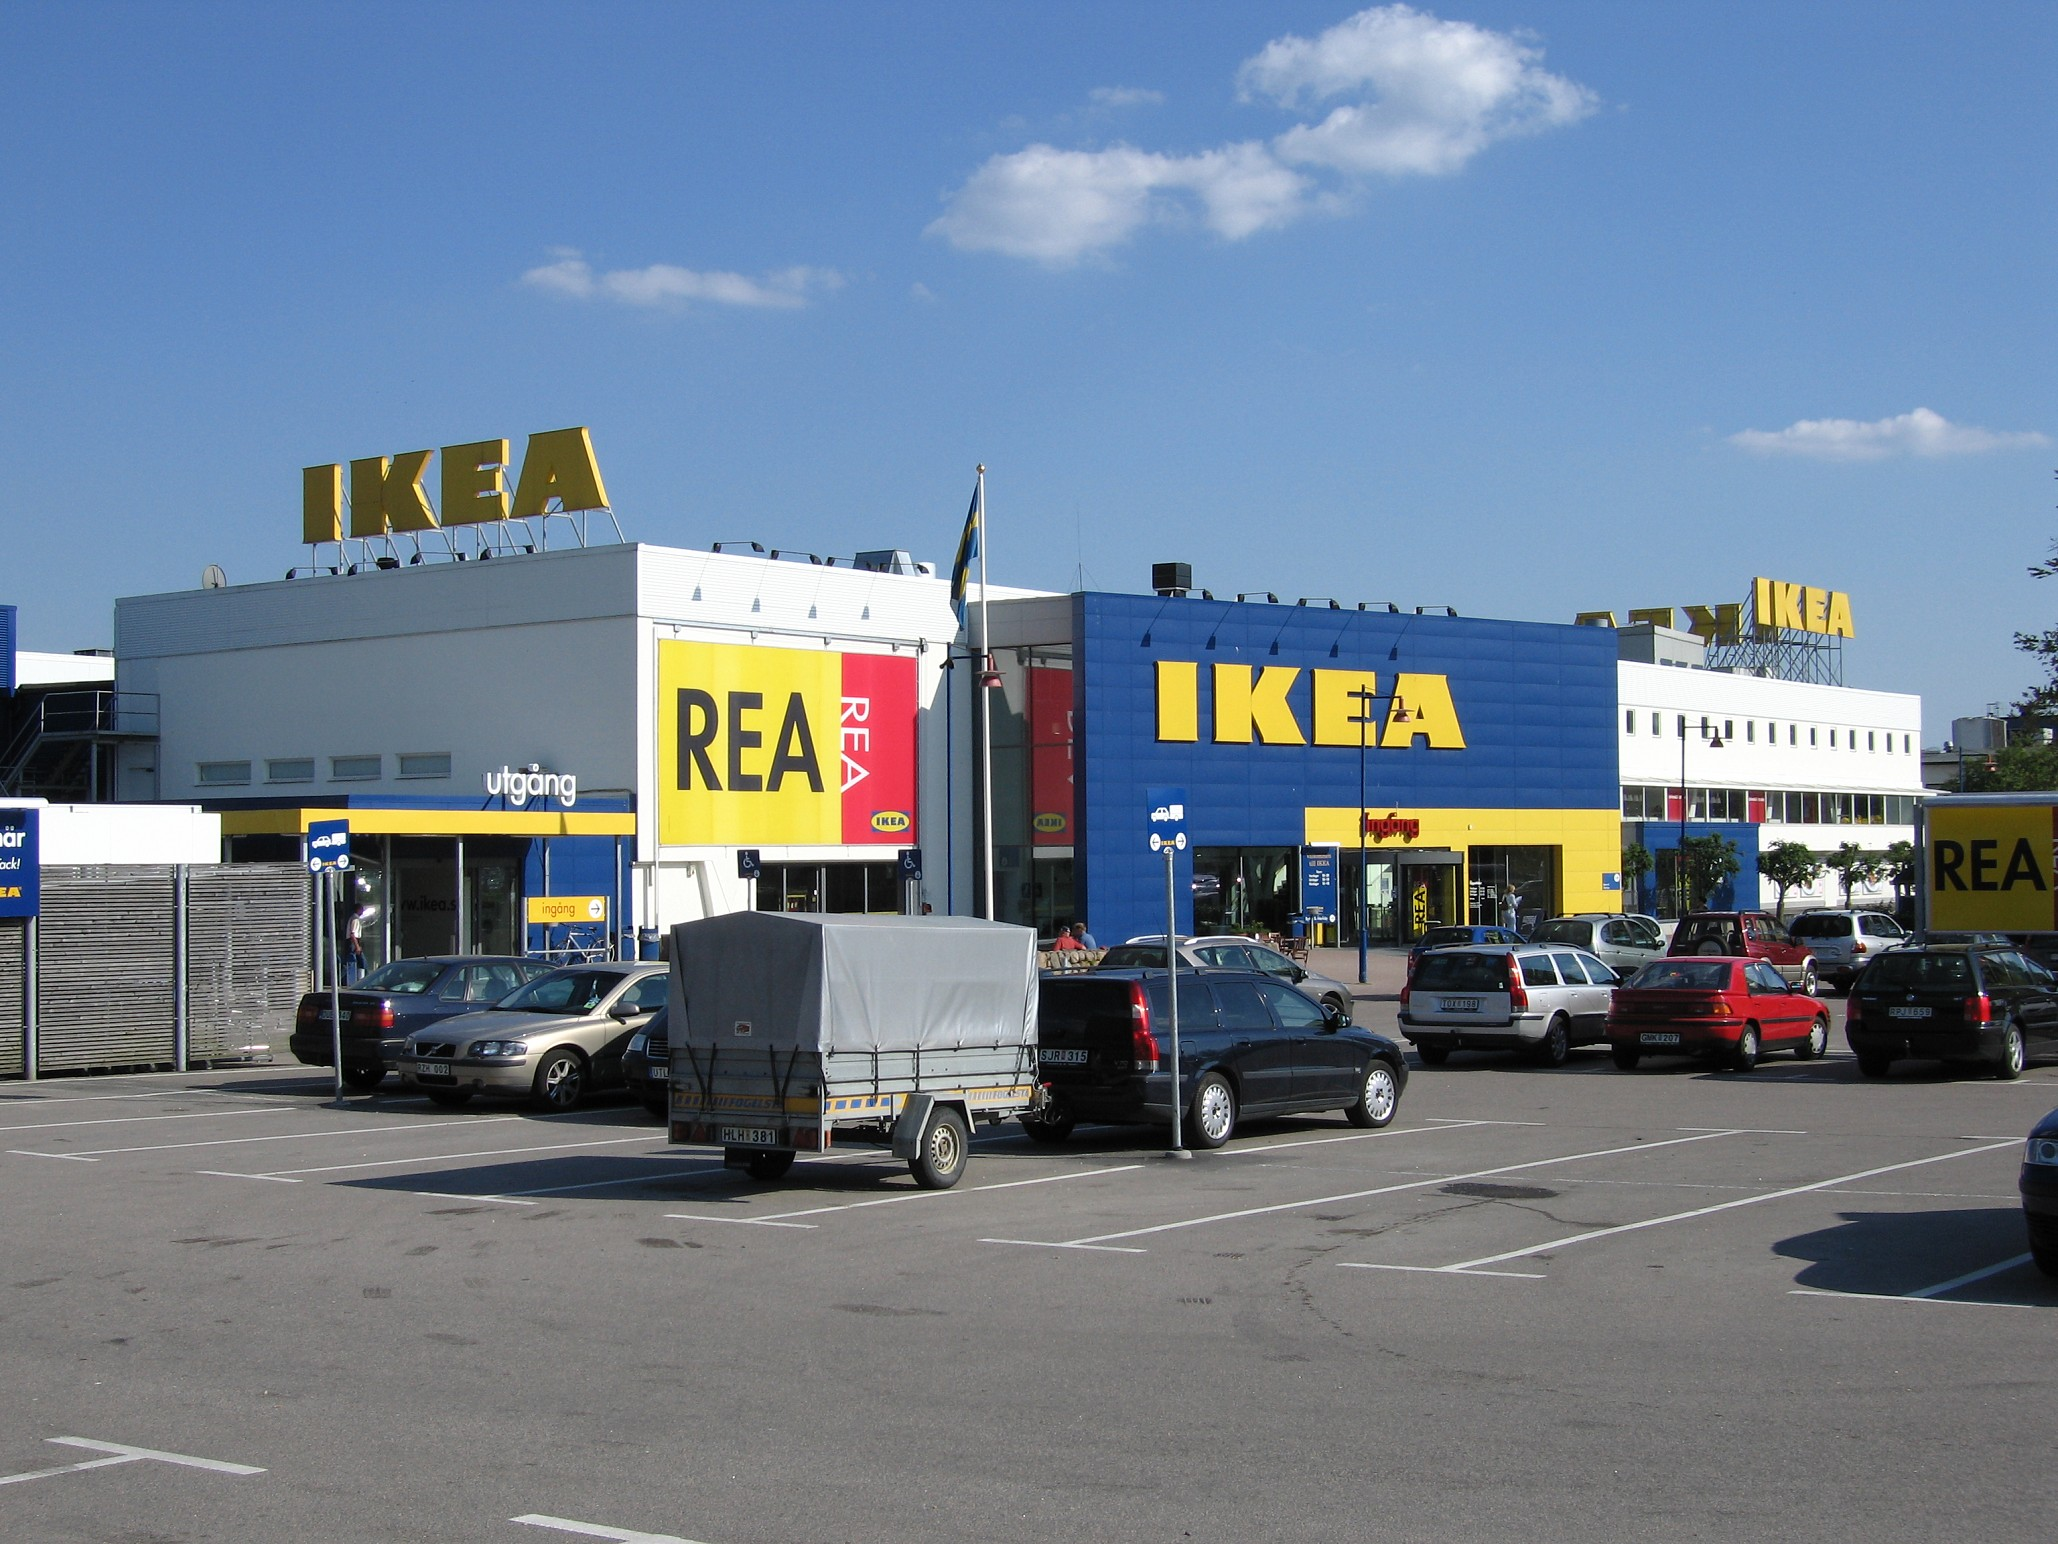 Interior Ikeaikea fileikea store elmhult jpg wikimedia commons jpg